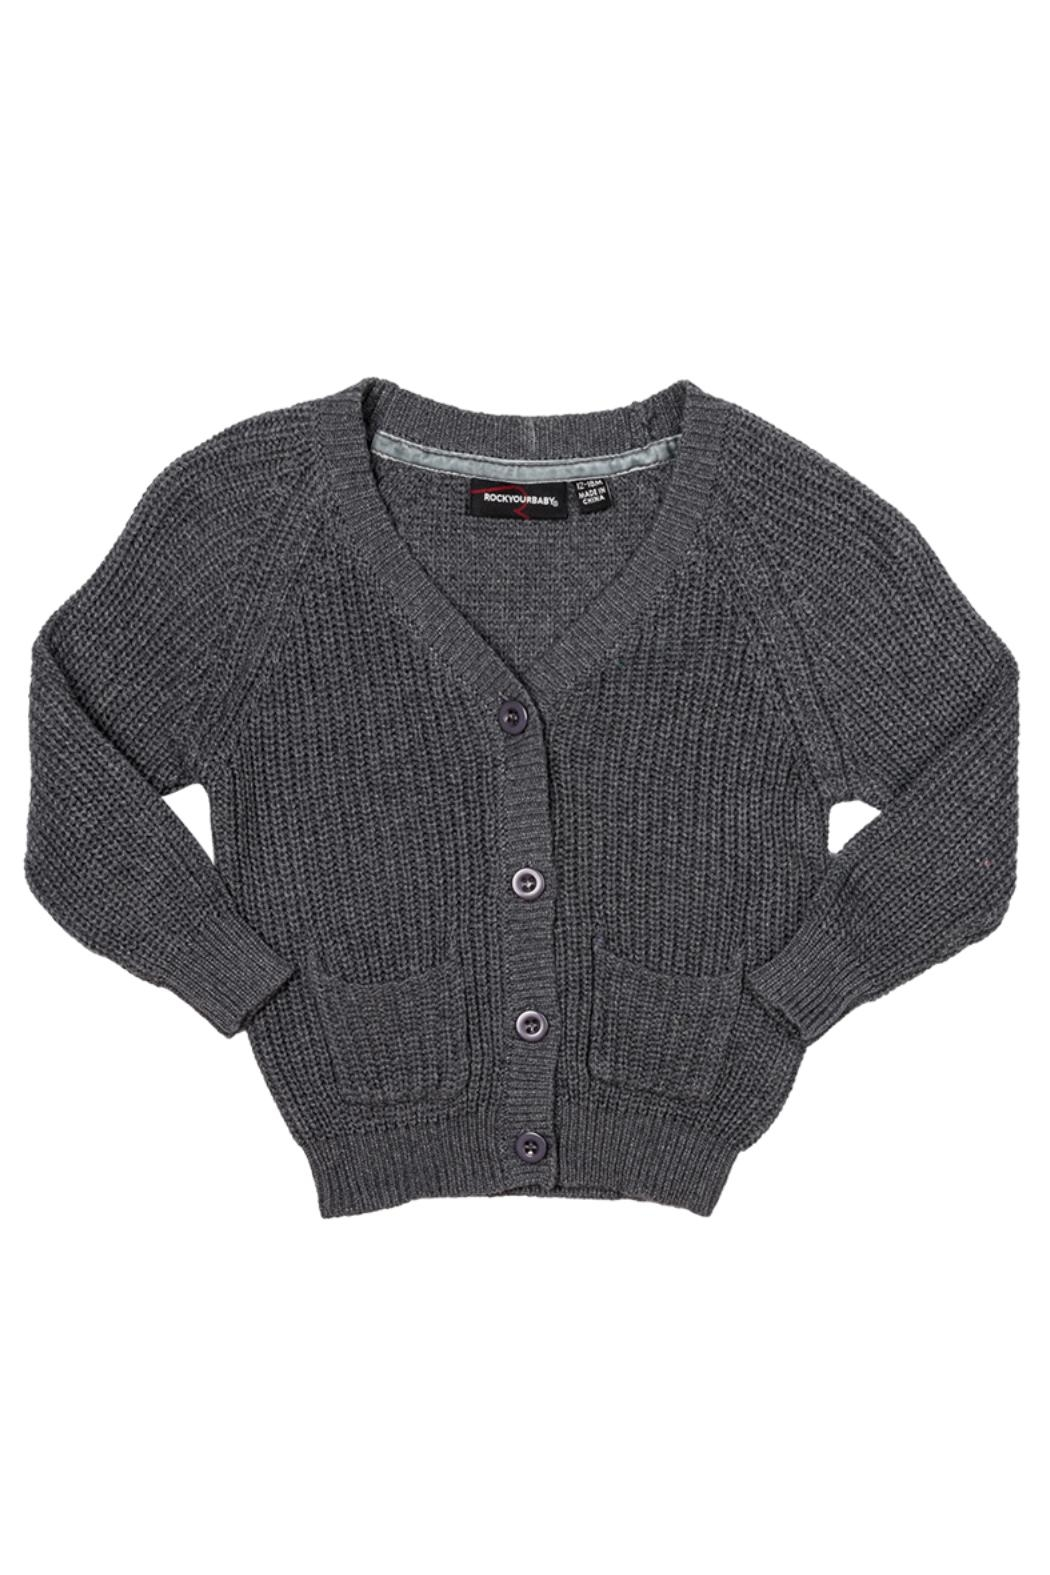 Rock Your Baby Grey Slouch Cardigan - Main Image